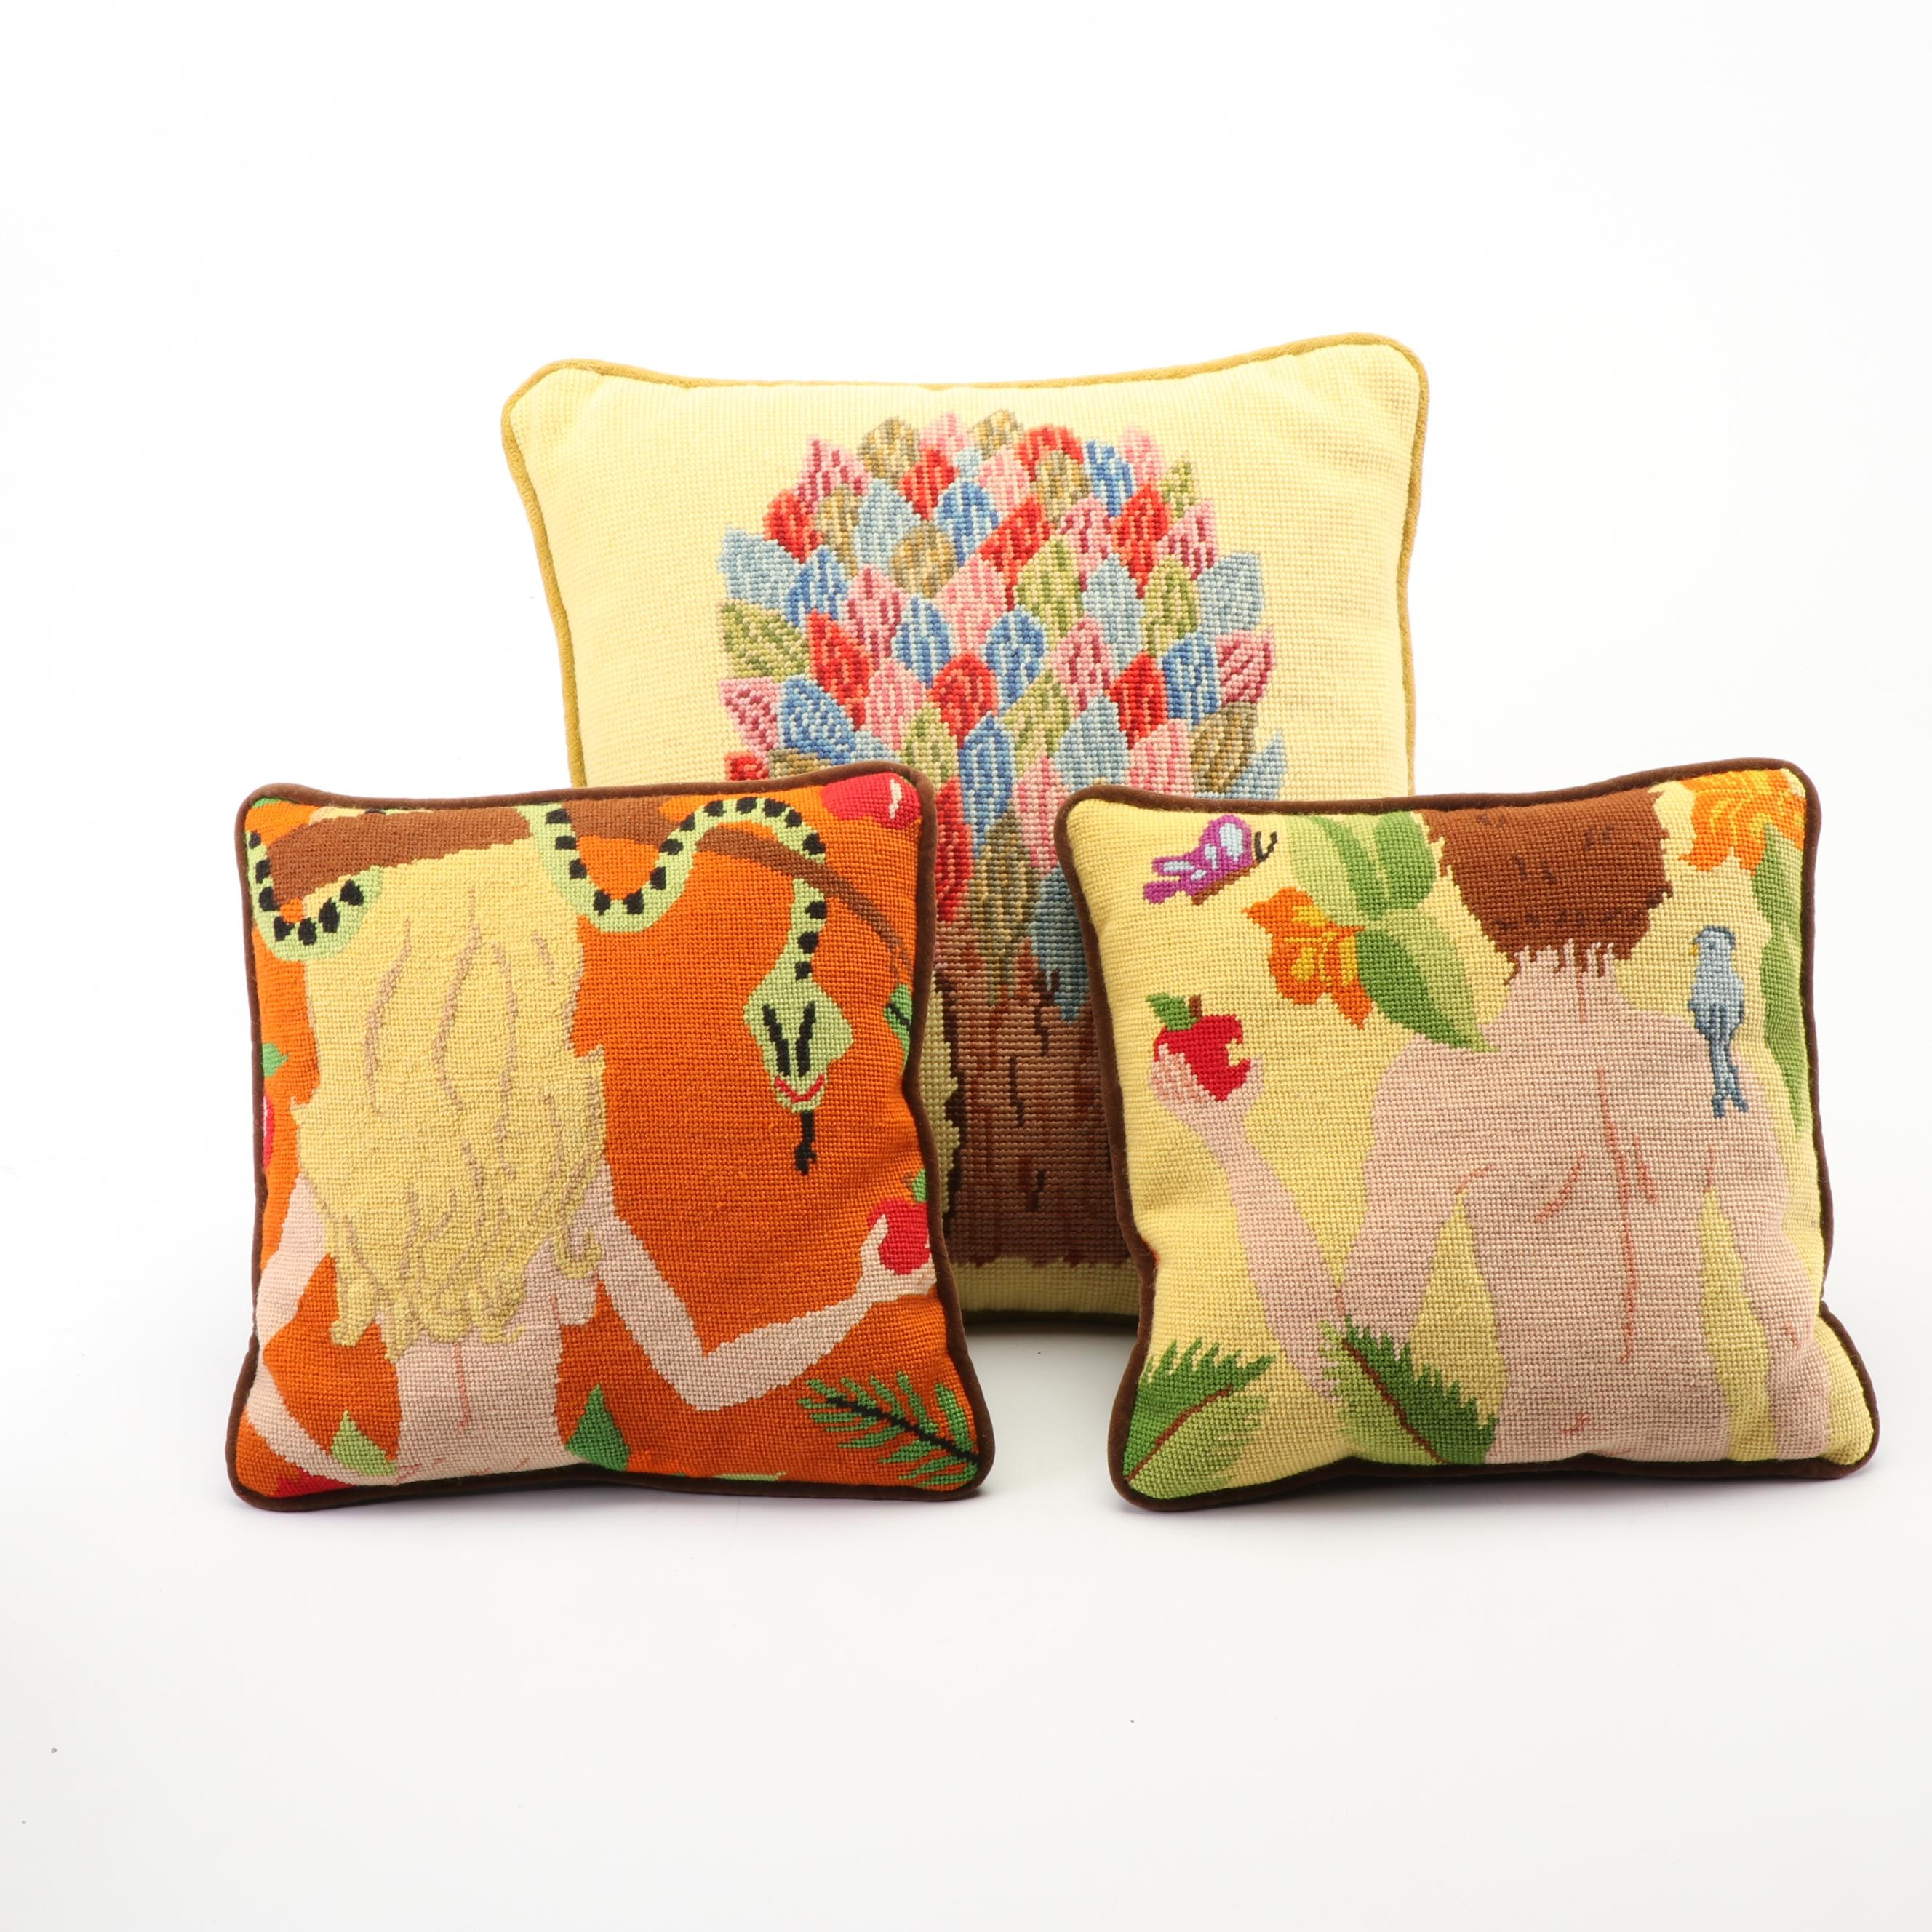 Adam and Eve Hand-Stitched Throw Pillows